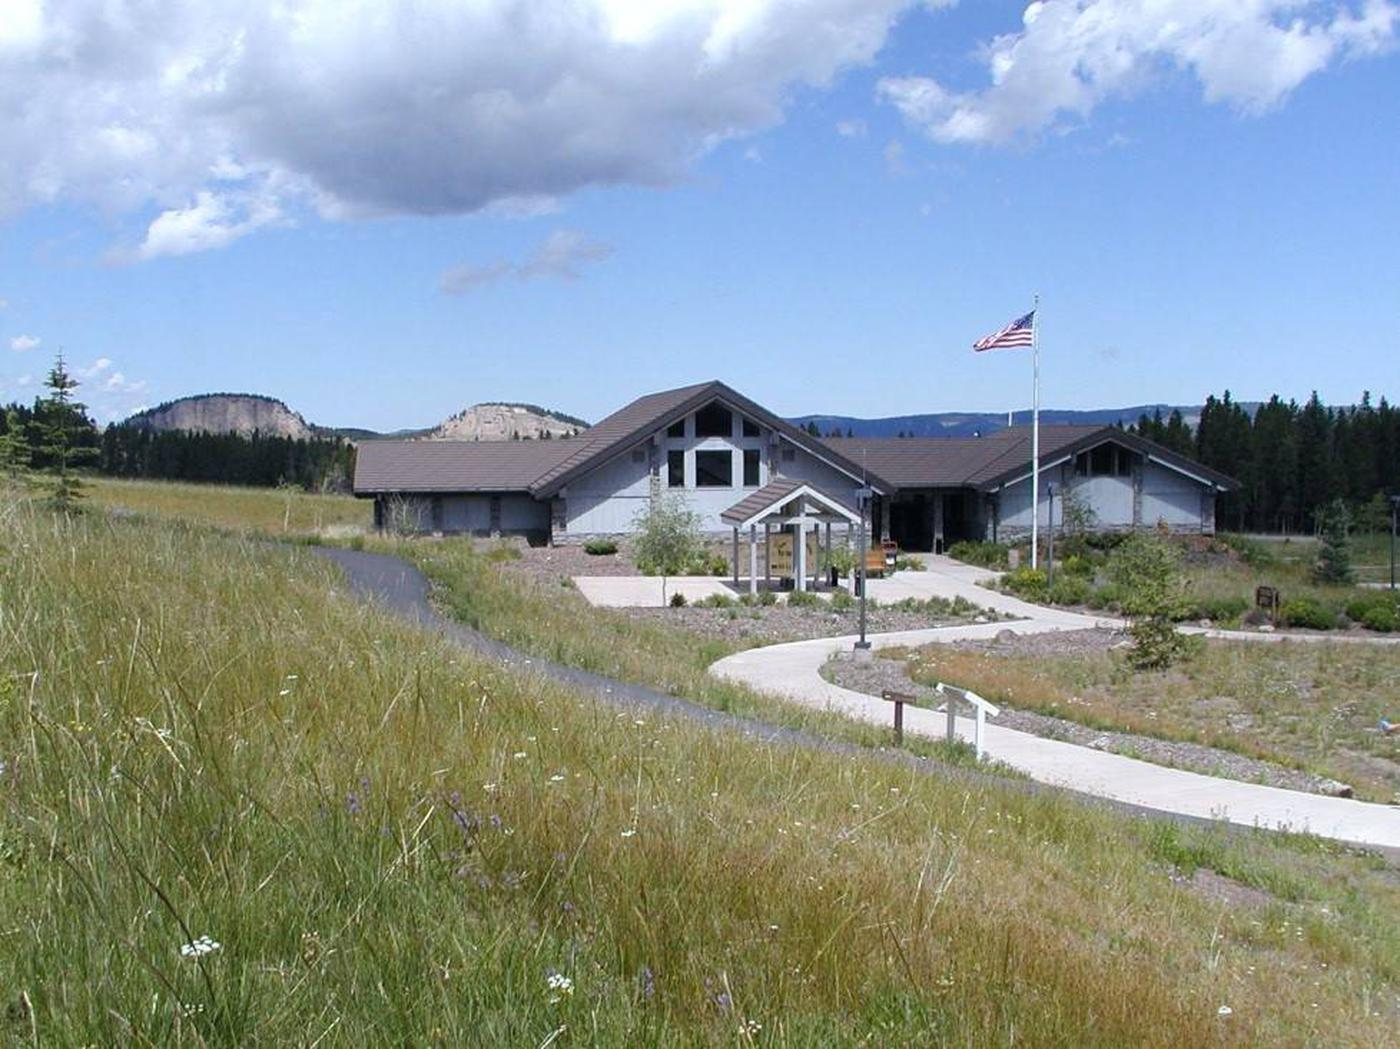 Burgess Junction Visitor Center 2